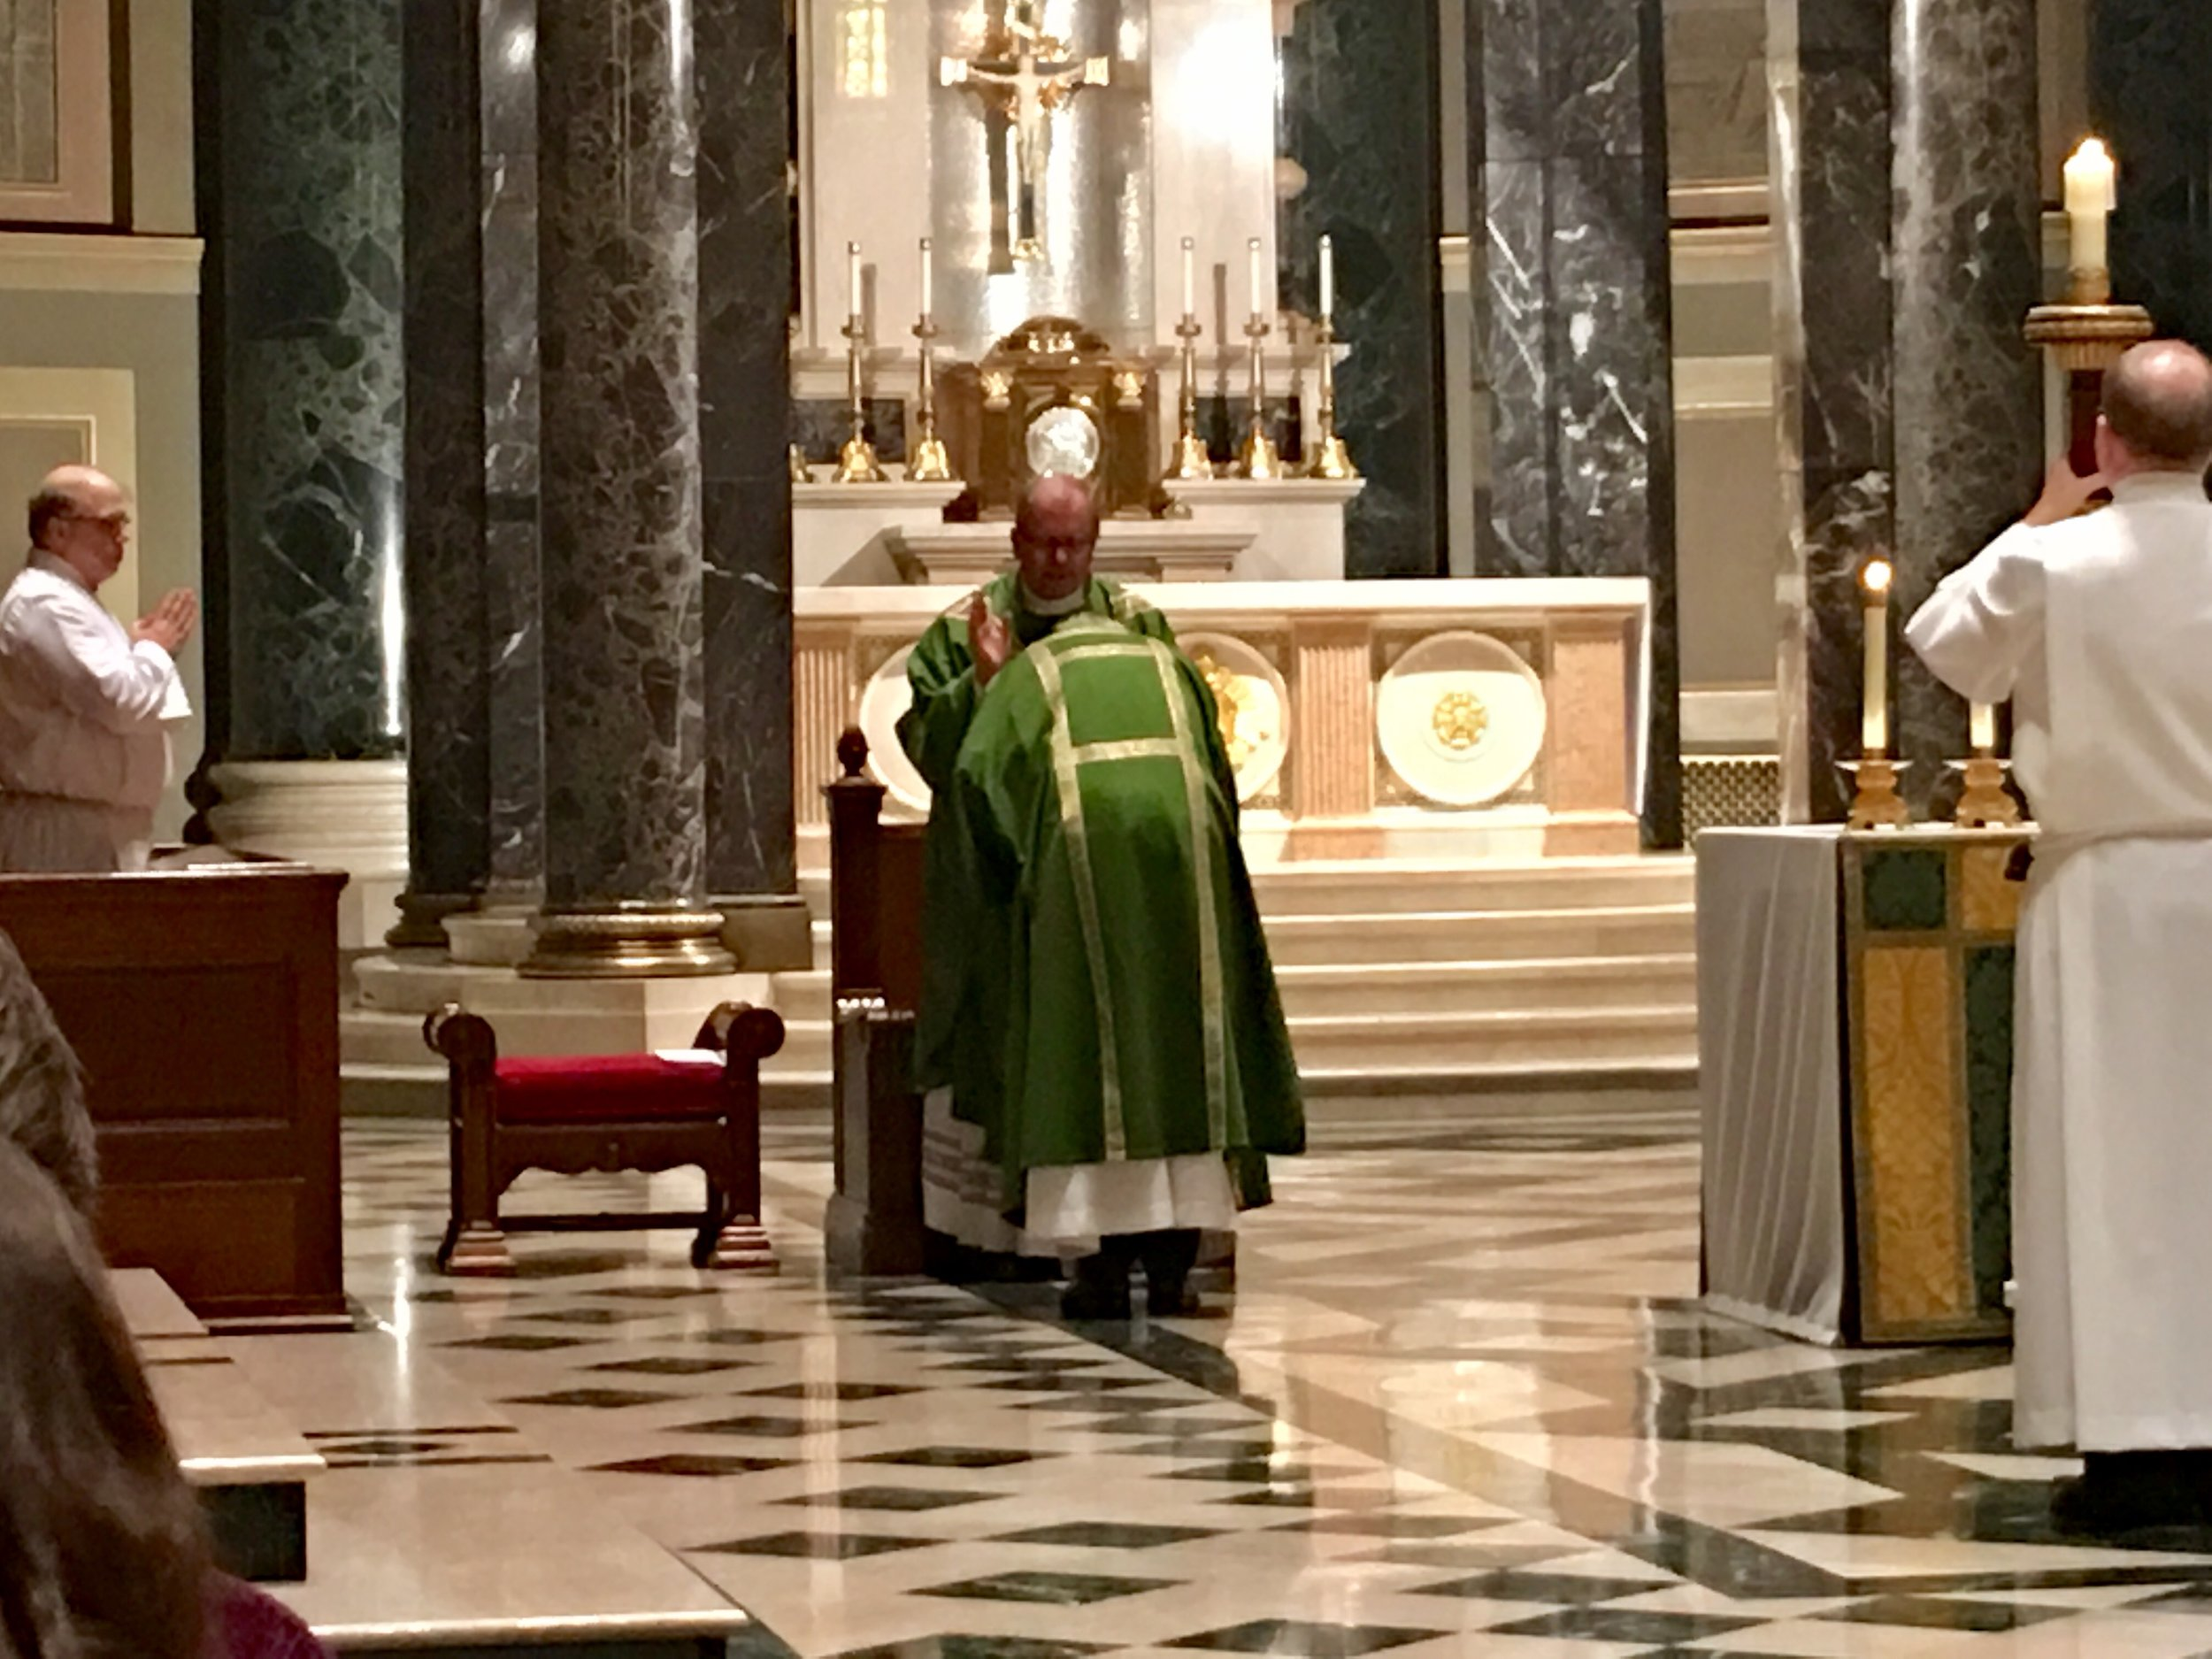 Fr. Dennis Gill, Rector of the Cathedral Basilica and Director of the Archdiocesan Office for Divine Worship, imparts his blessing on our own Deacon Christopher Roberts.